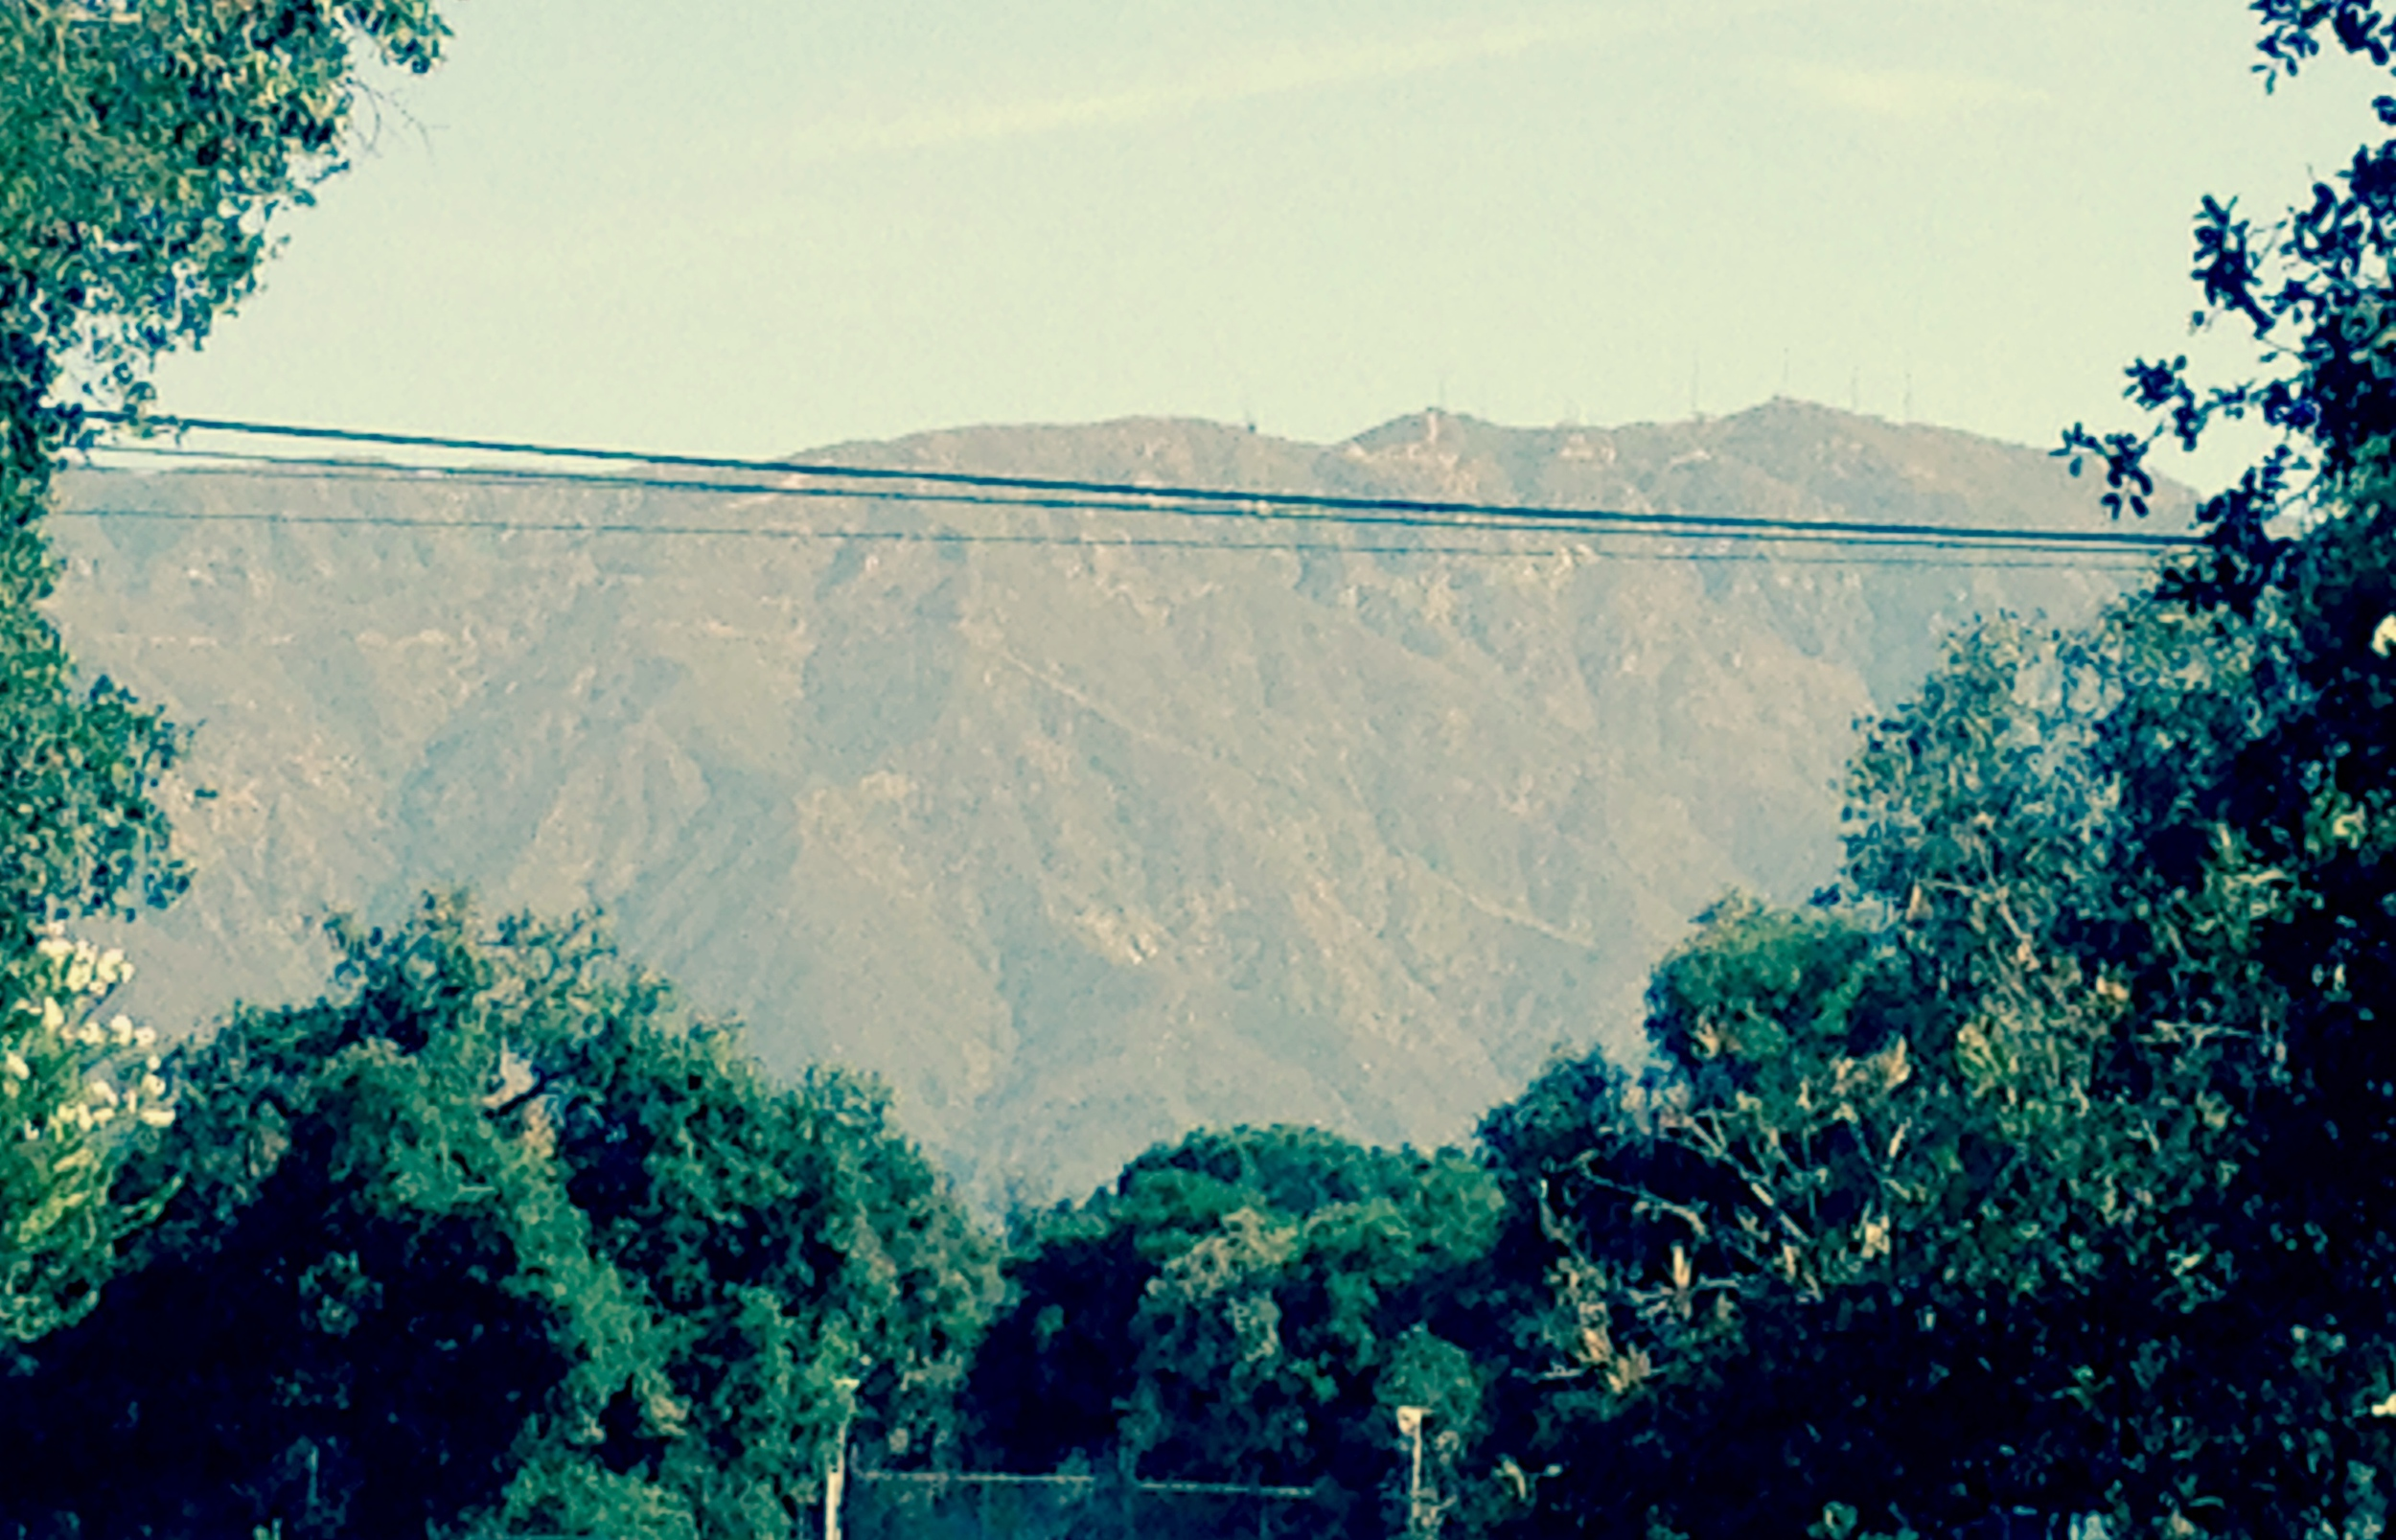 harvey mudd: view of the mountains